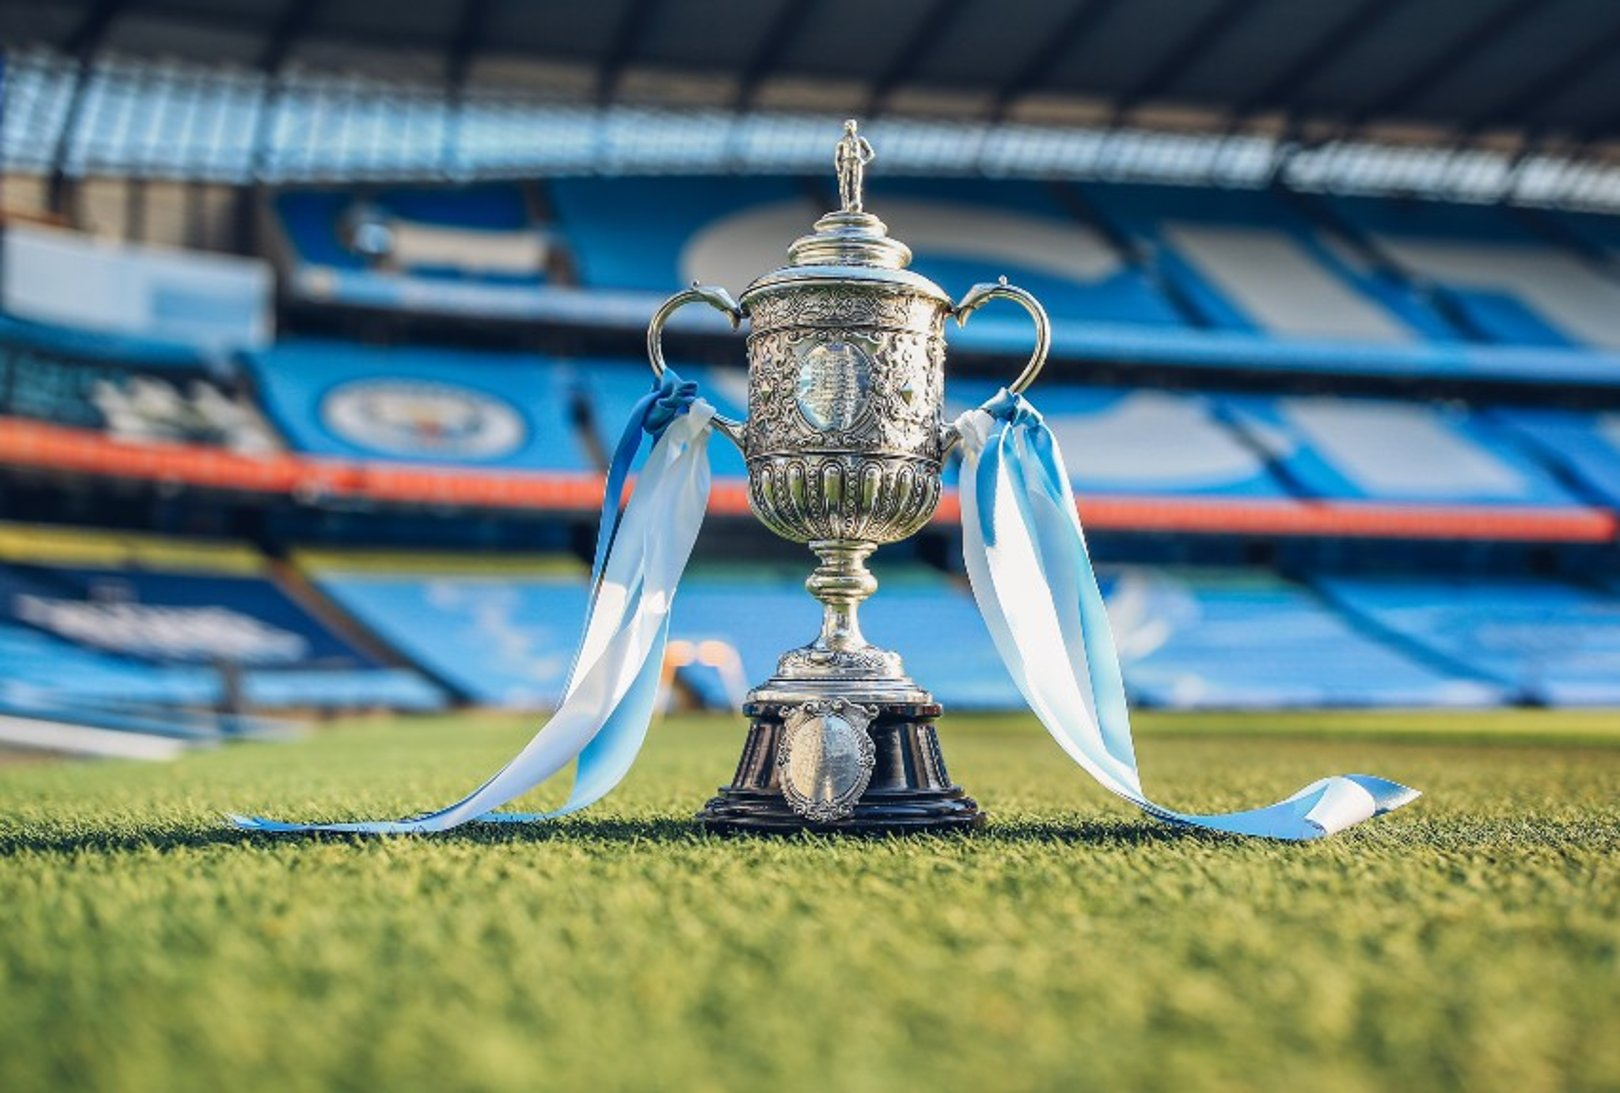 HH Sheikh Mansour secures historic FA Cup trophy